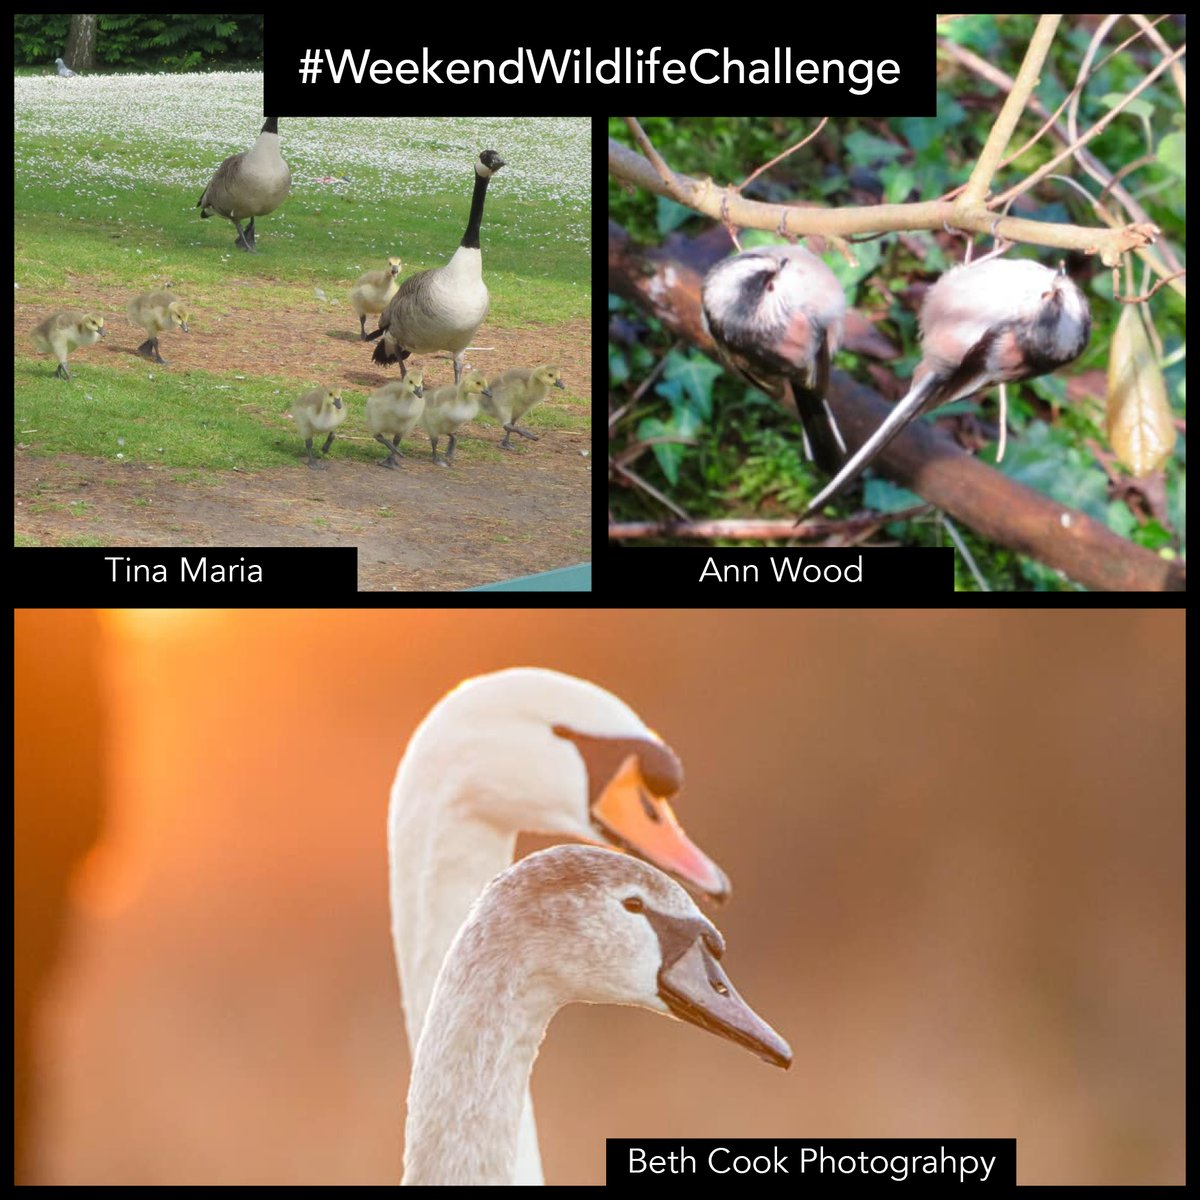 There were some fantastic images submitted for our #WeekendWildlifeChallenge this week!  Here are just a few of your entries. Thanks for showing them with us!  Our challenge next week will be announced on Friday... it involves something sly, furry and orange. Any guesses?